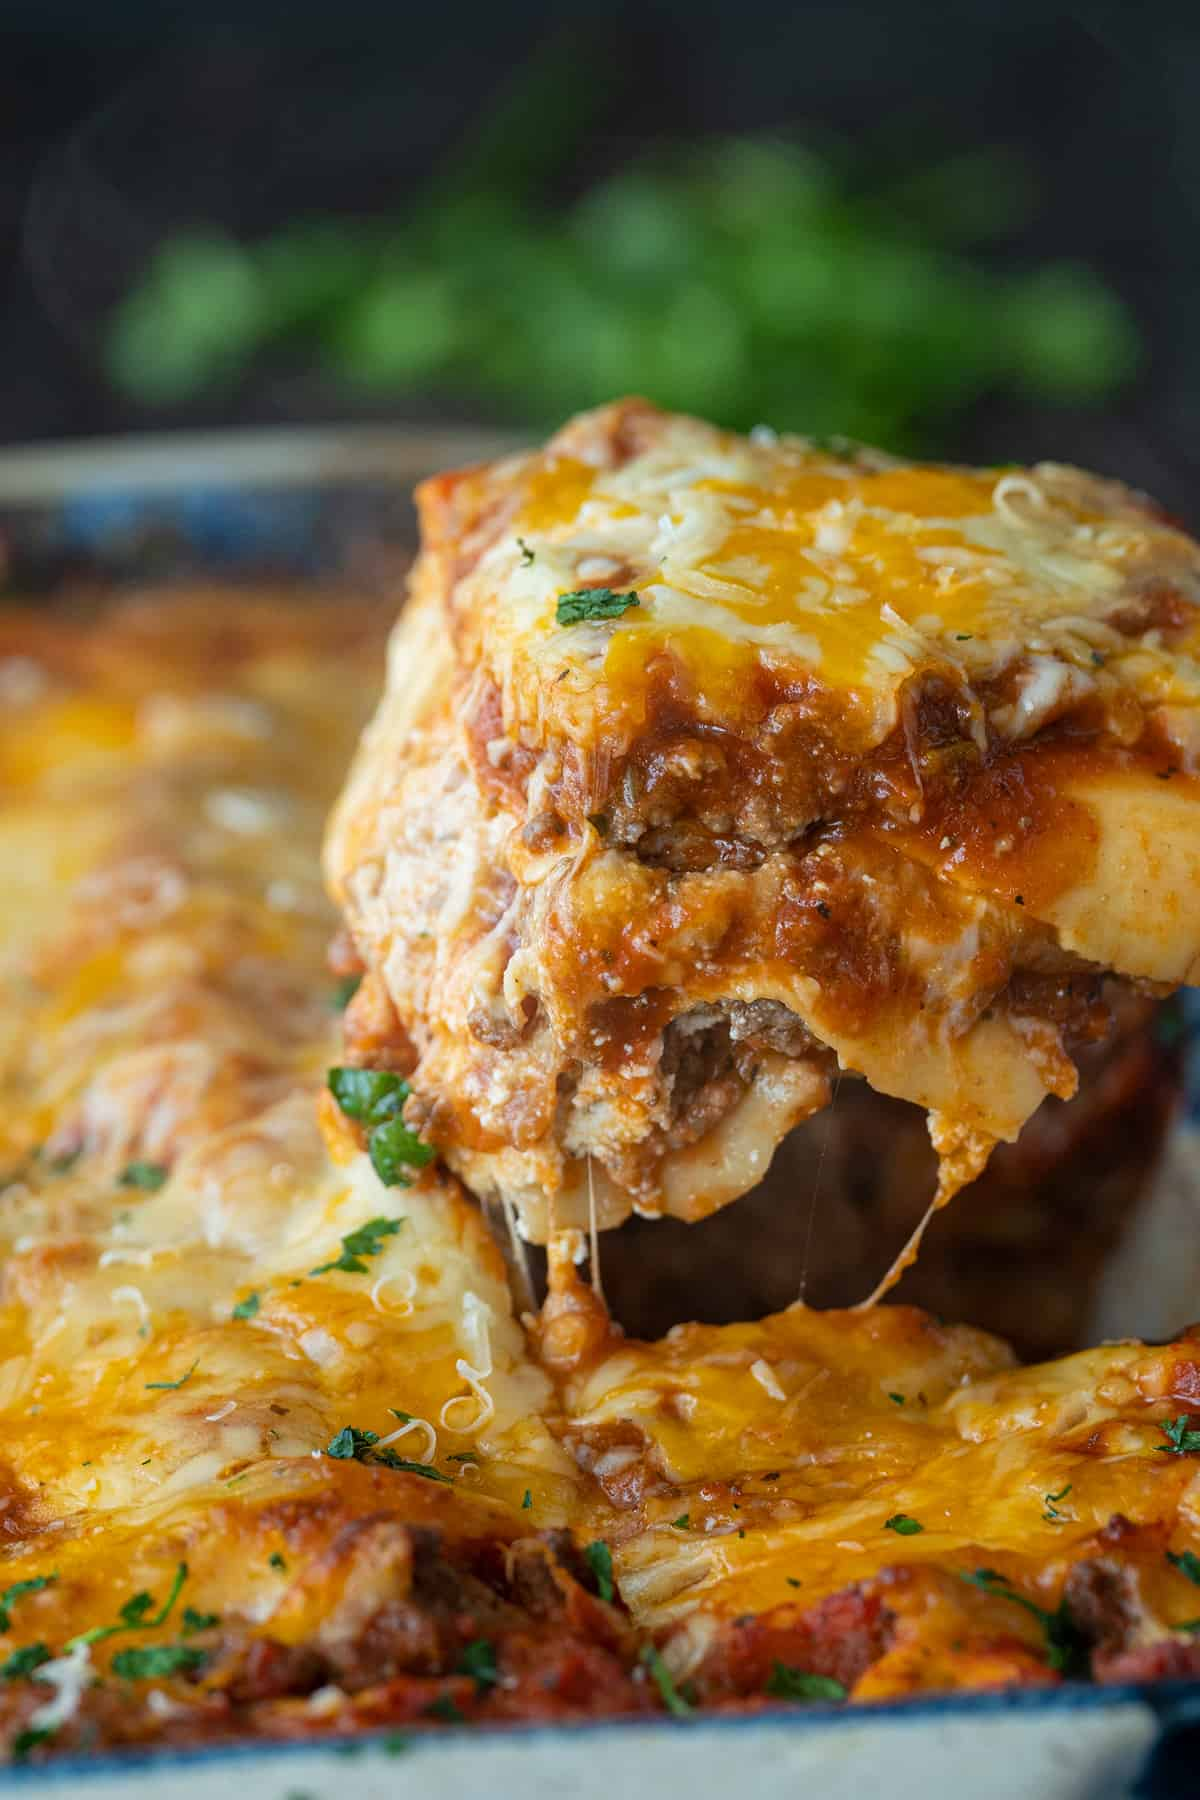 Beef Lasagna being lifted from a pan